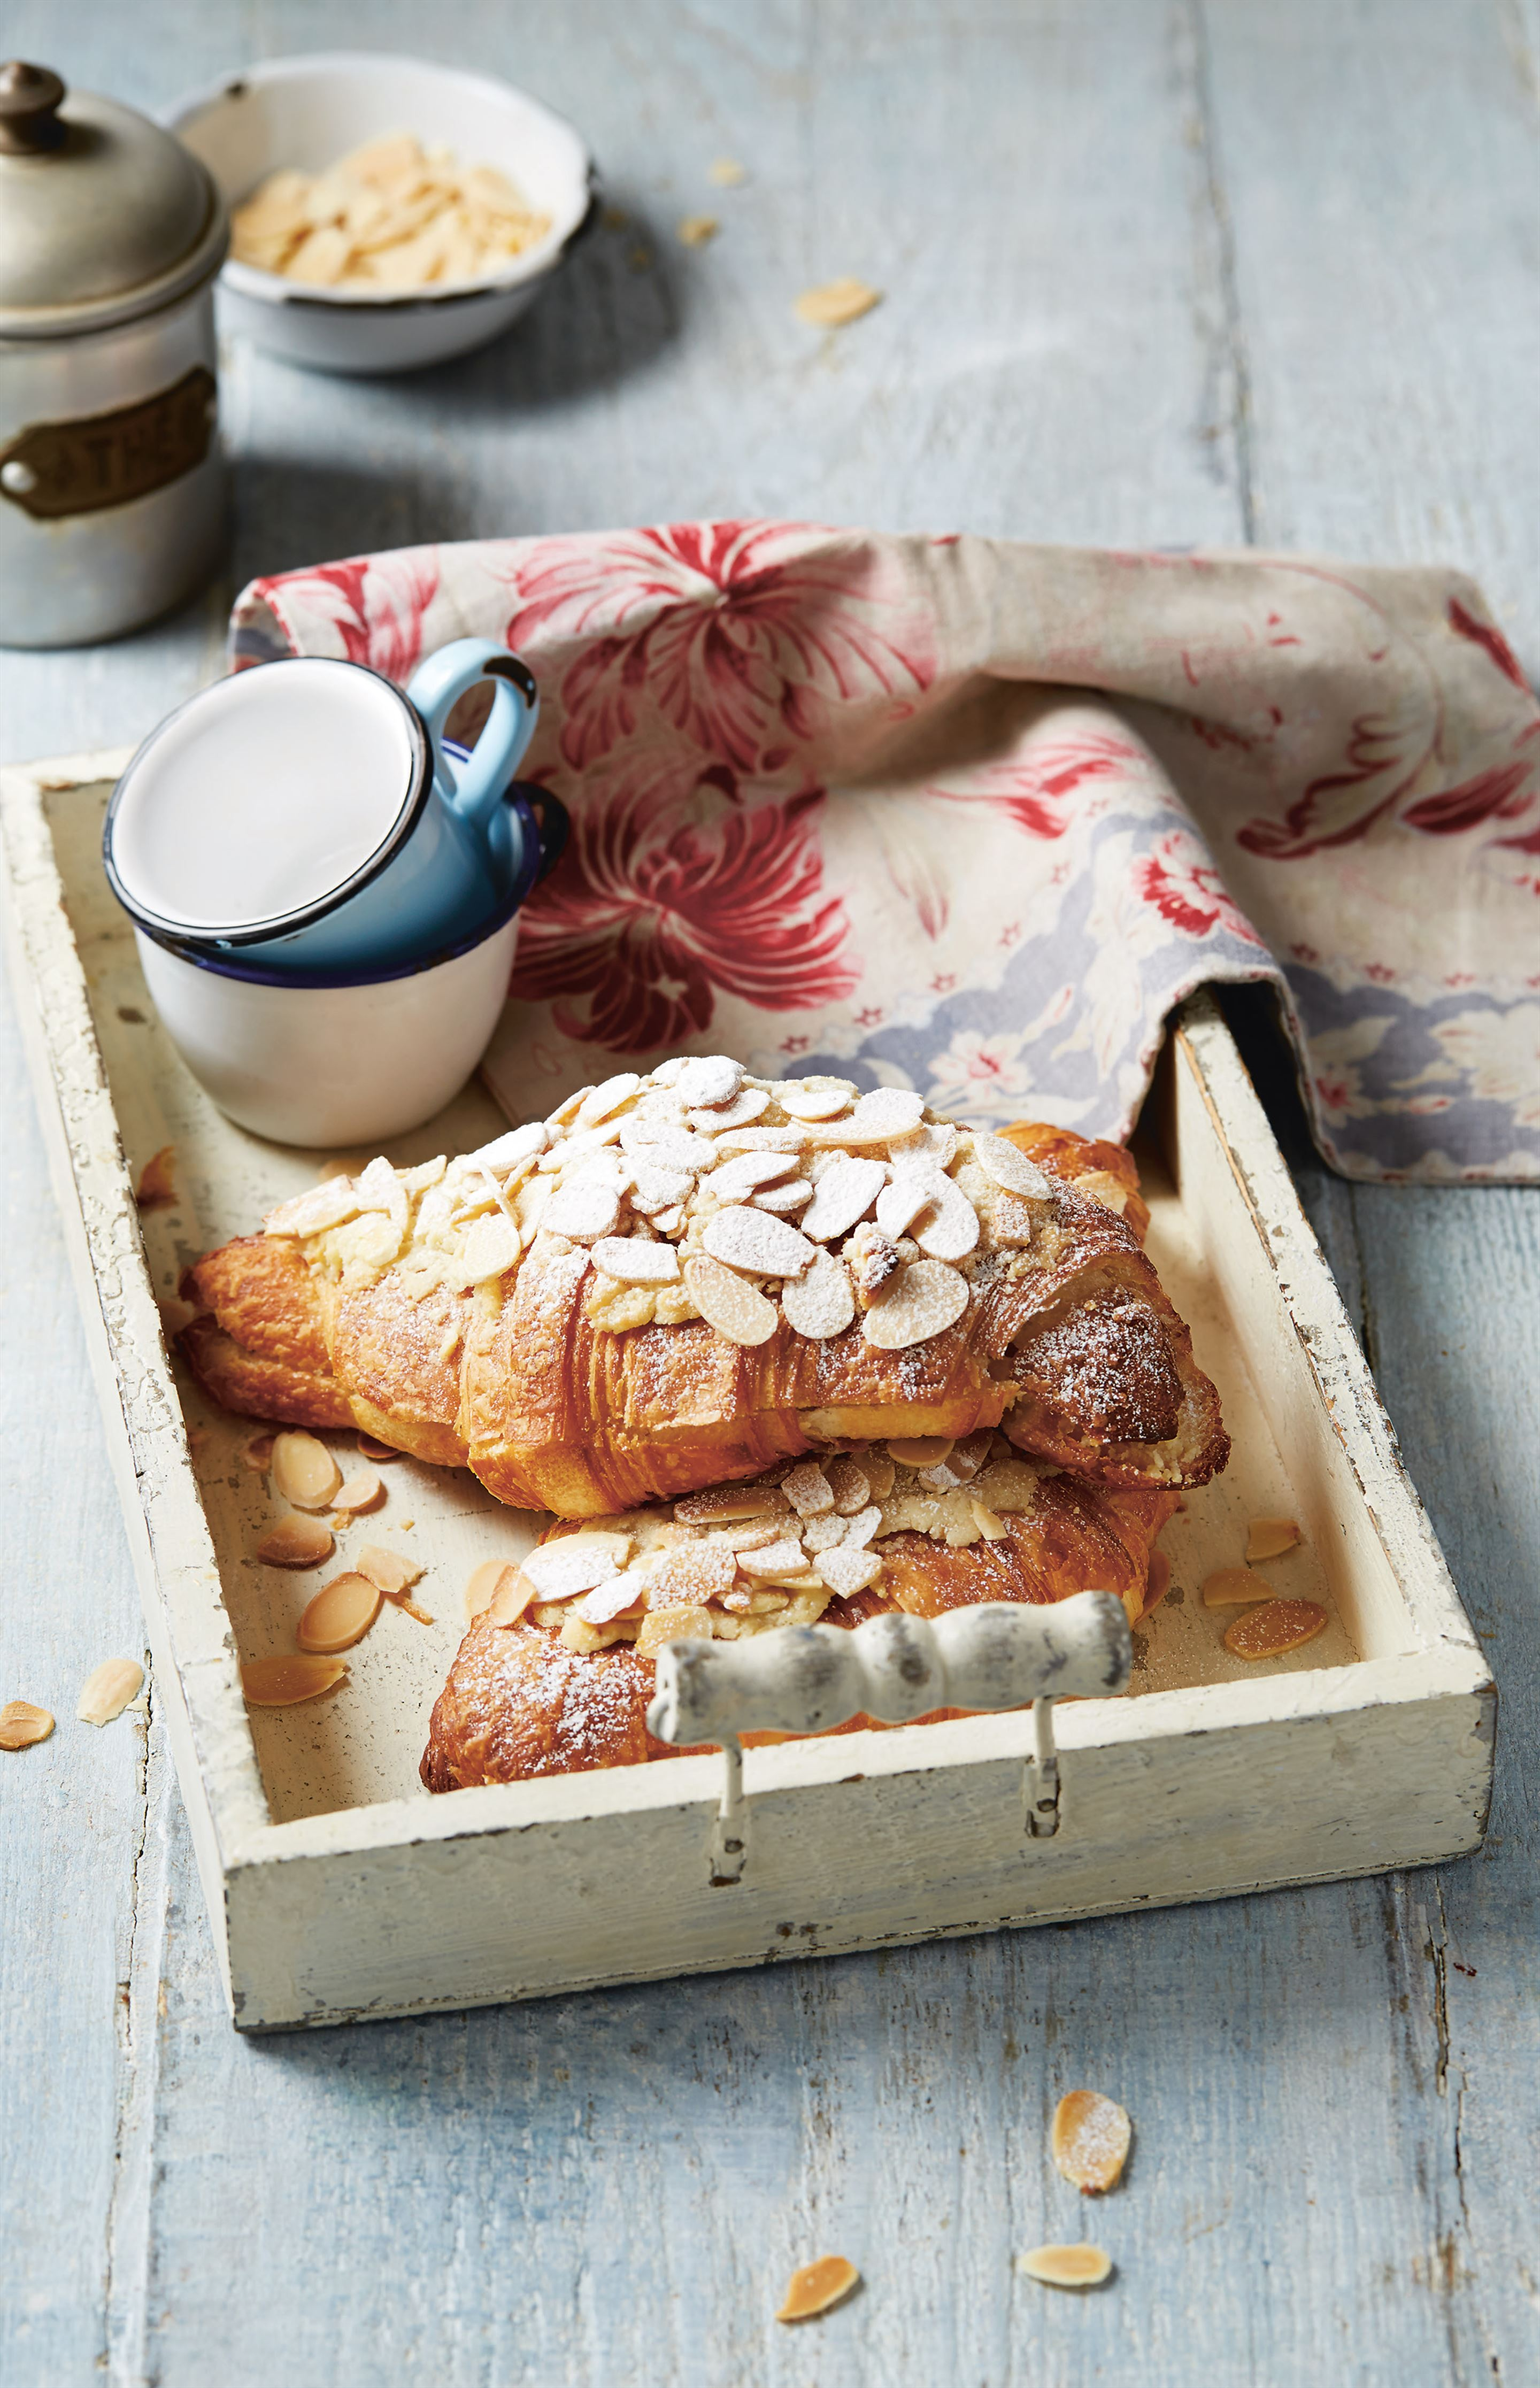 Almond croissants made easy